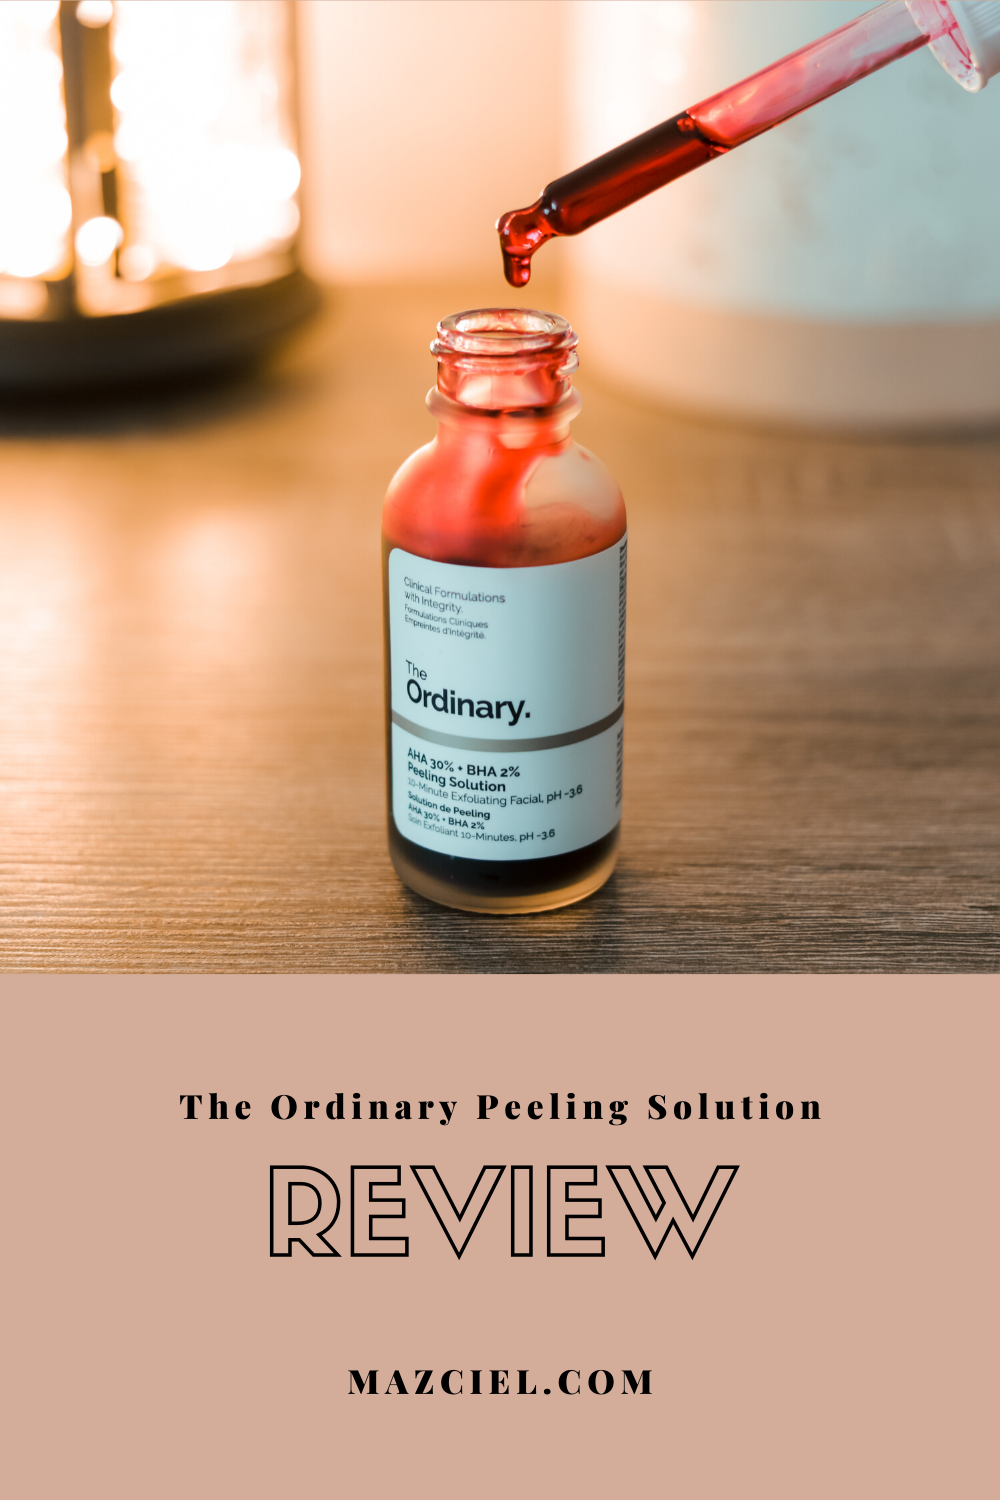 The Ordinary Peeling Solution Review in 2020 The